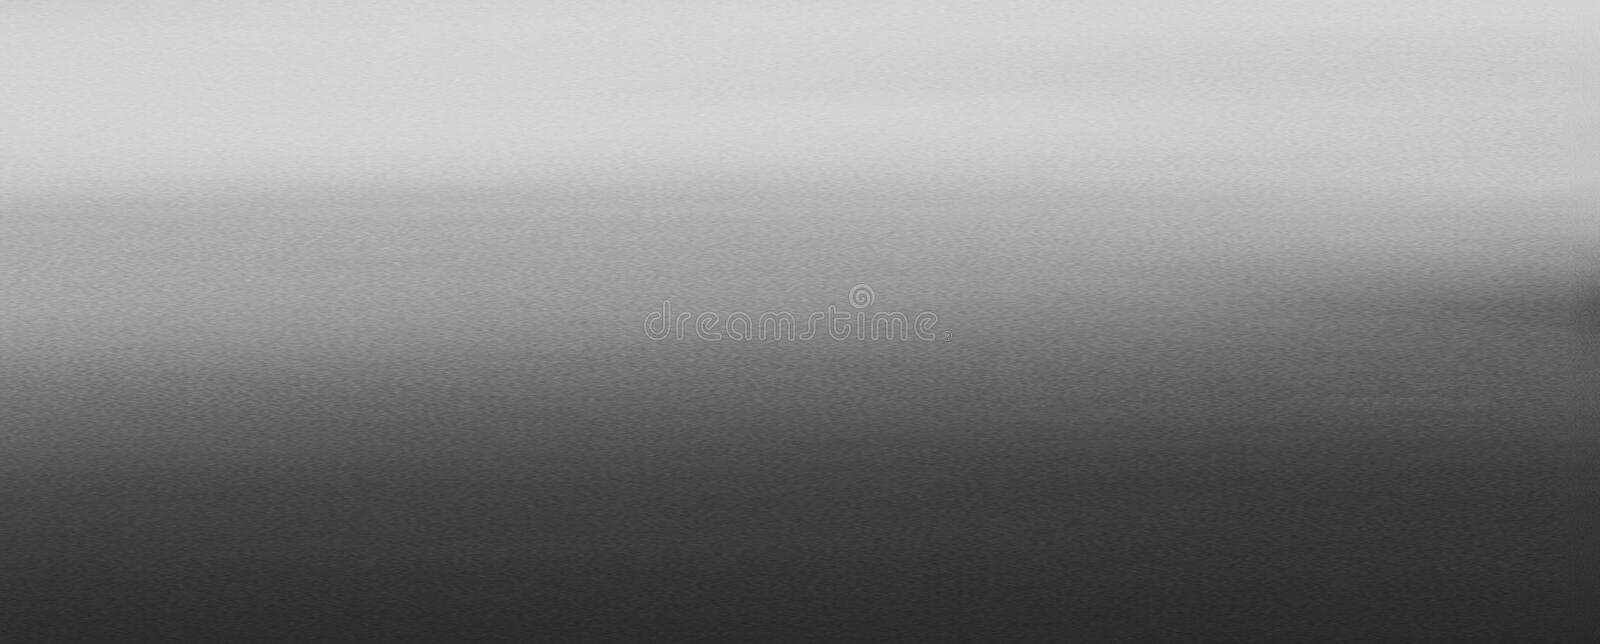 Abstract background, Gradient, gray, black, shade, Texture, creative, design, design, Banner, sticker. stock photography